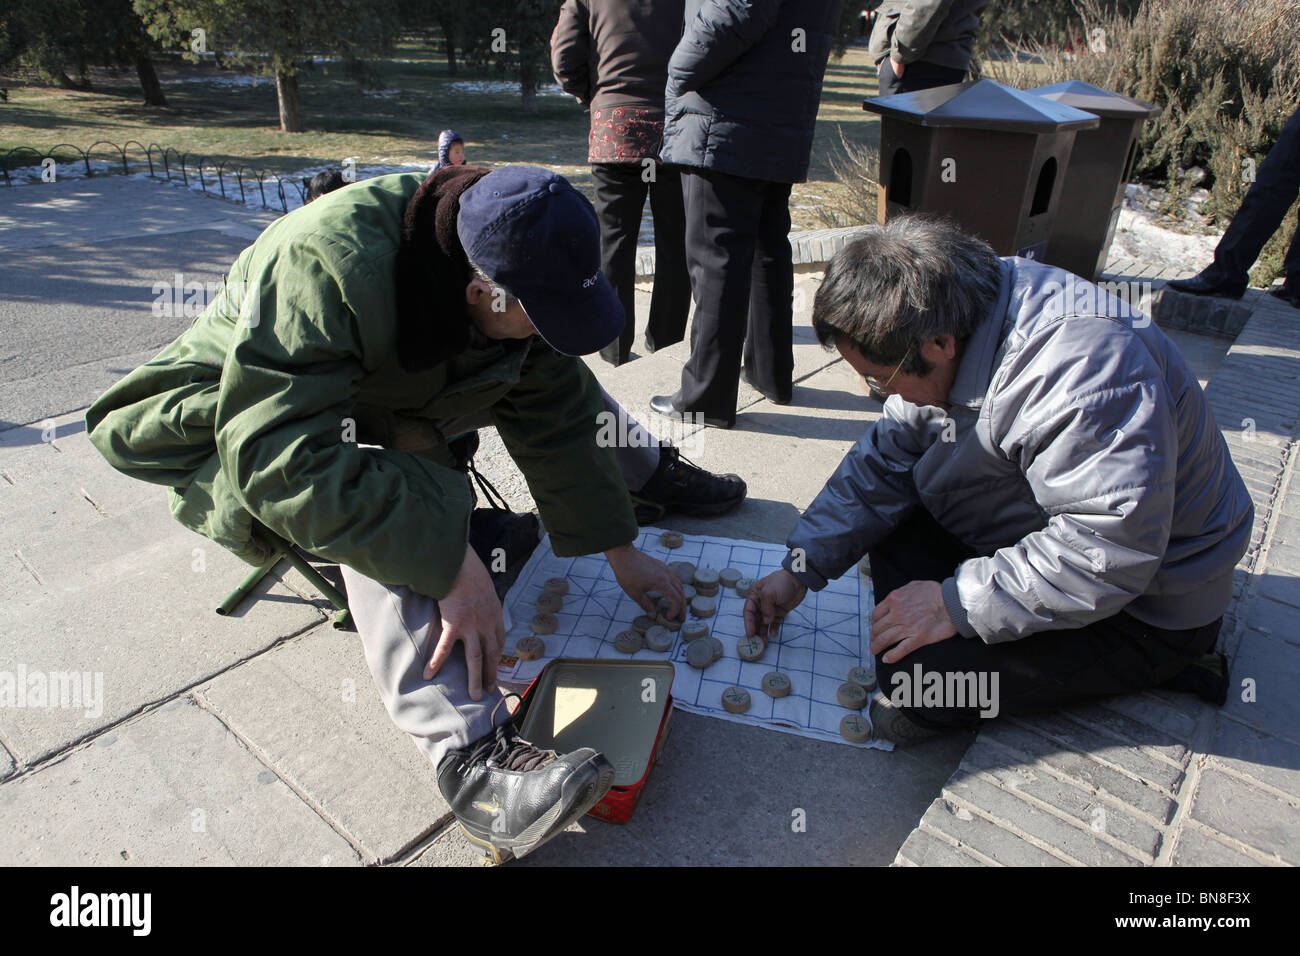 China, Beijing, The Forbidden City Temple of Heaven park, xiangqi (Chinese Chess) players - Stock Image